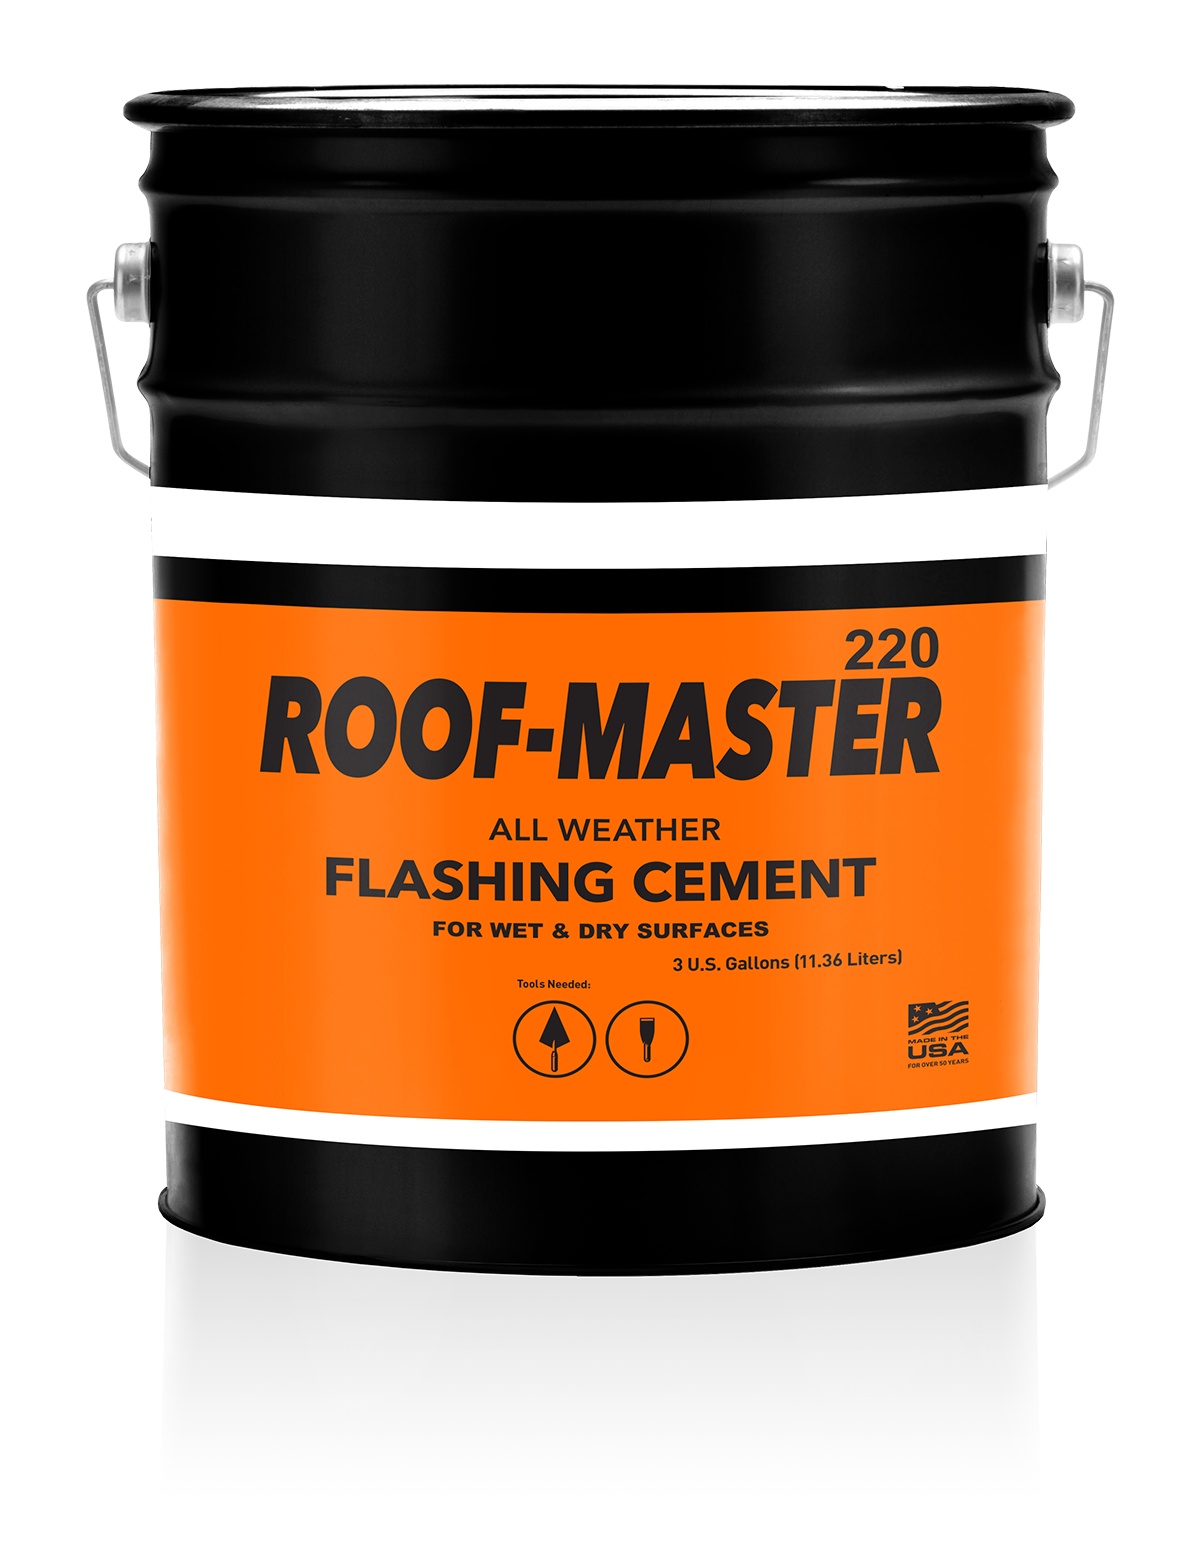 Roof-Master All Weather Flashing Cement in 5 Gallon Pail